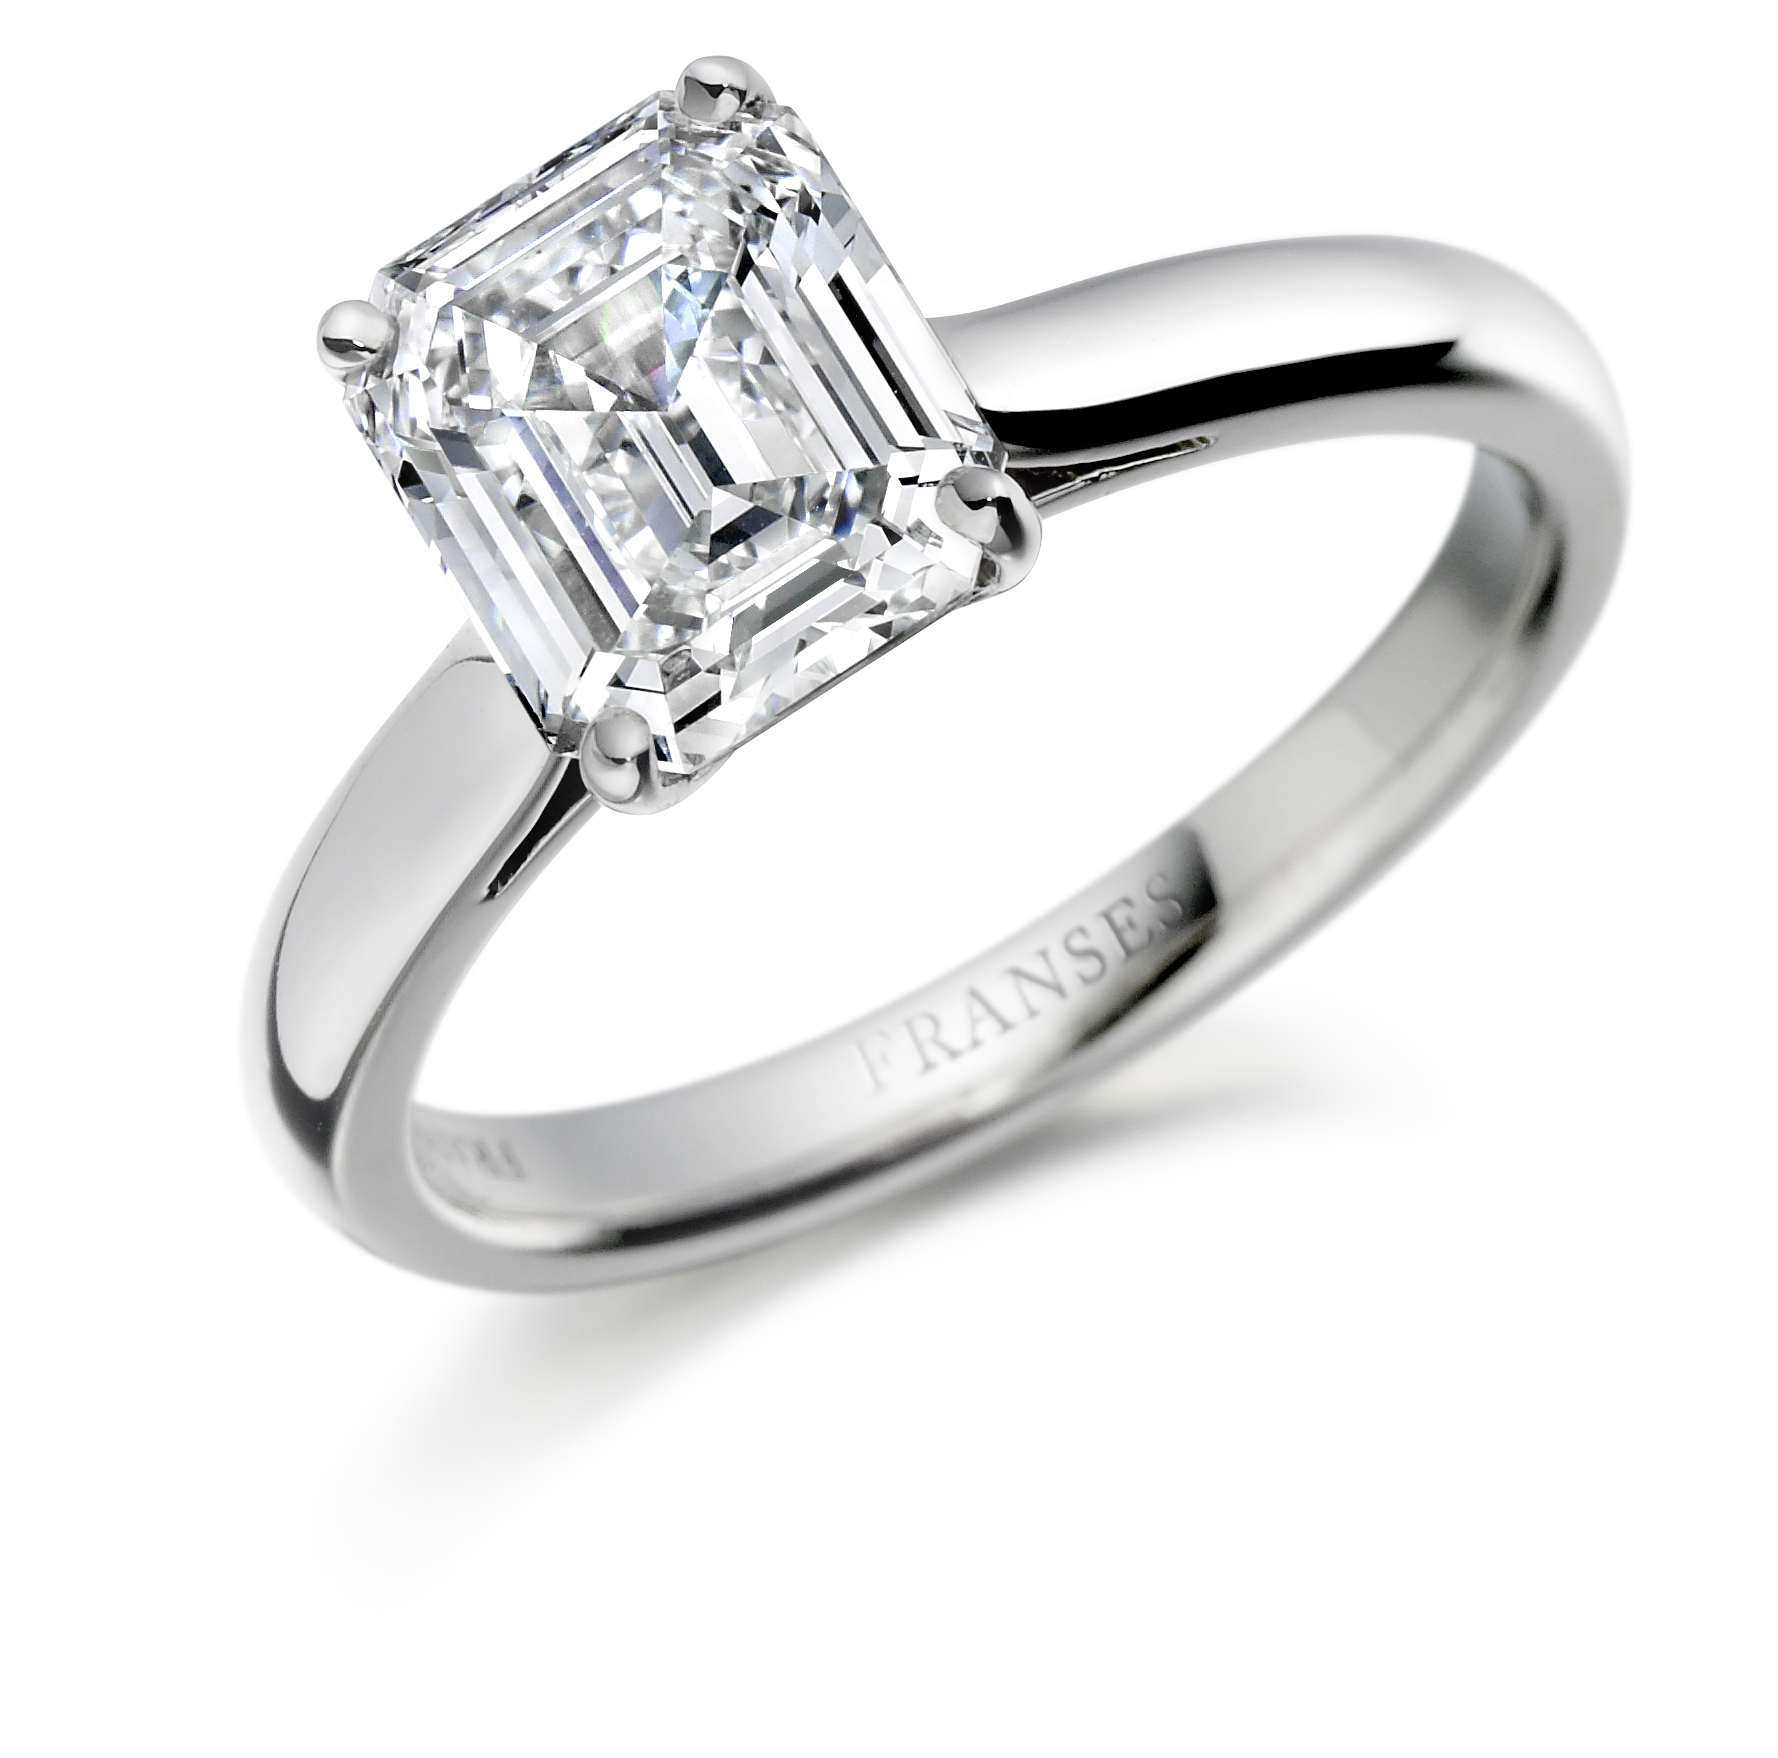 Emerald-cut diamond ring